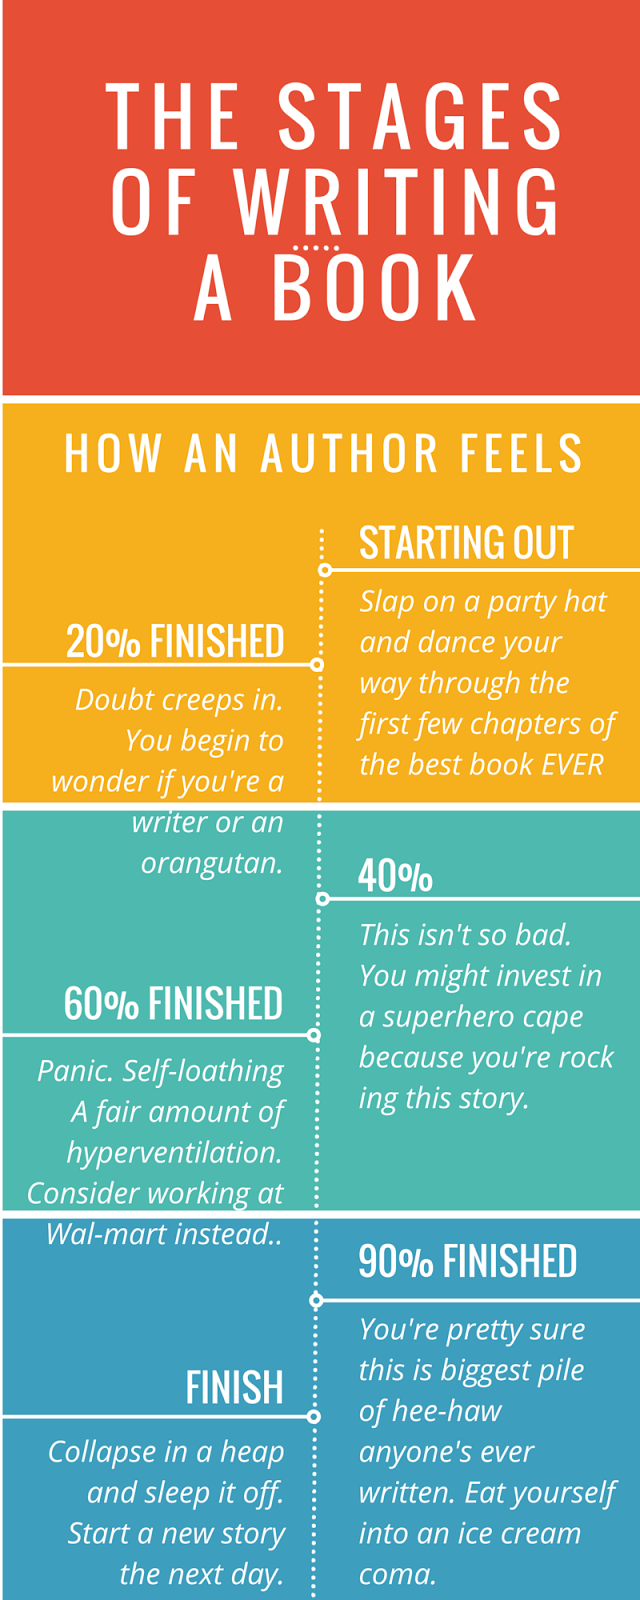 The-Stages-of-Writing-a-Book-How-an-Author-Feels-1